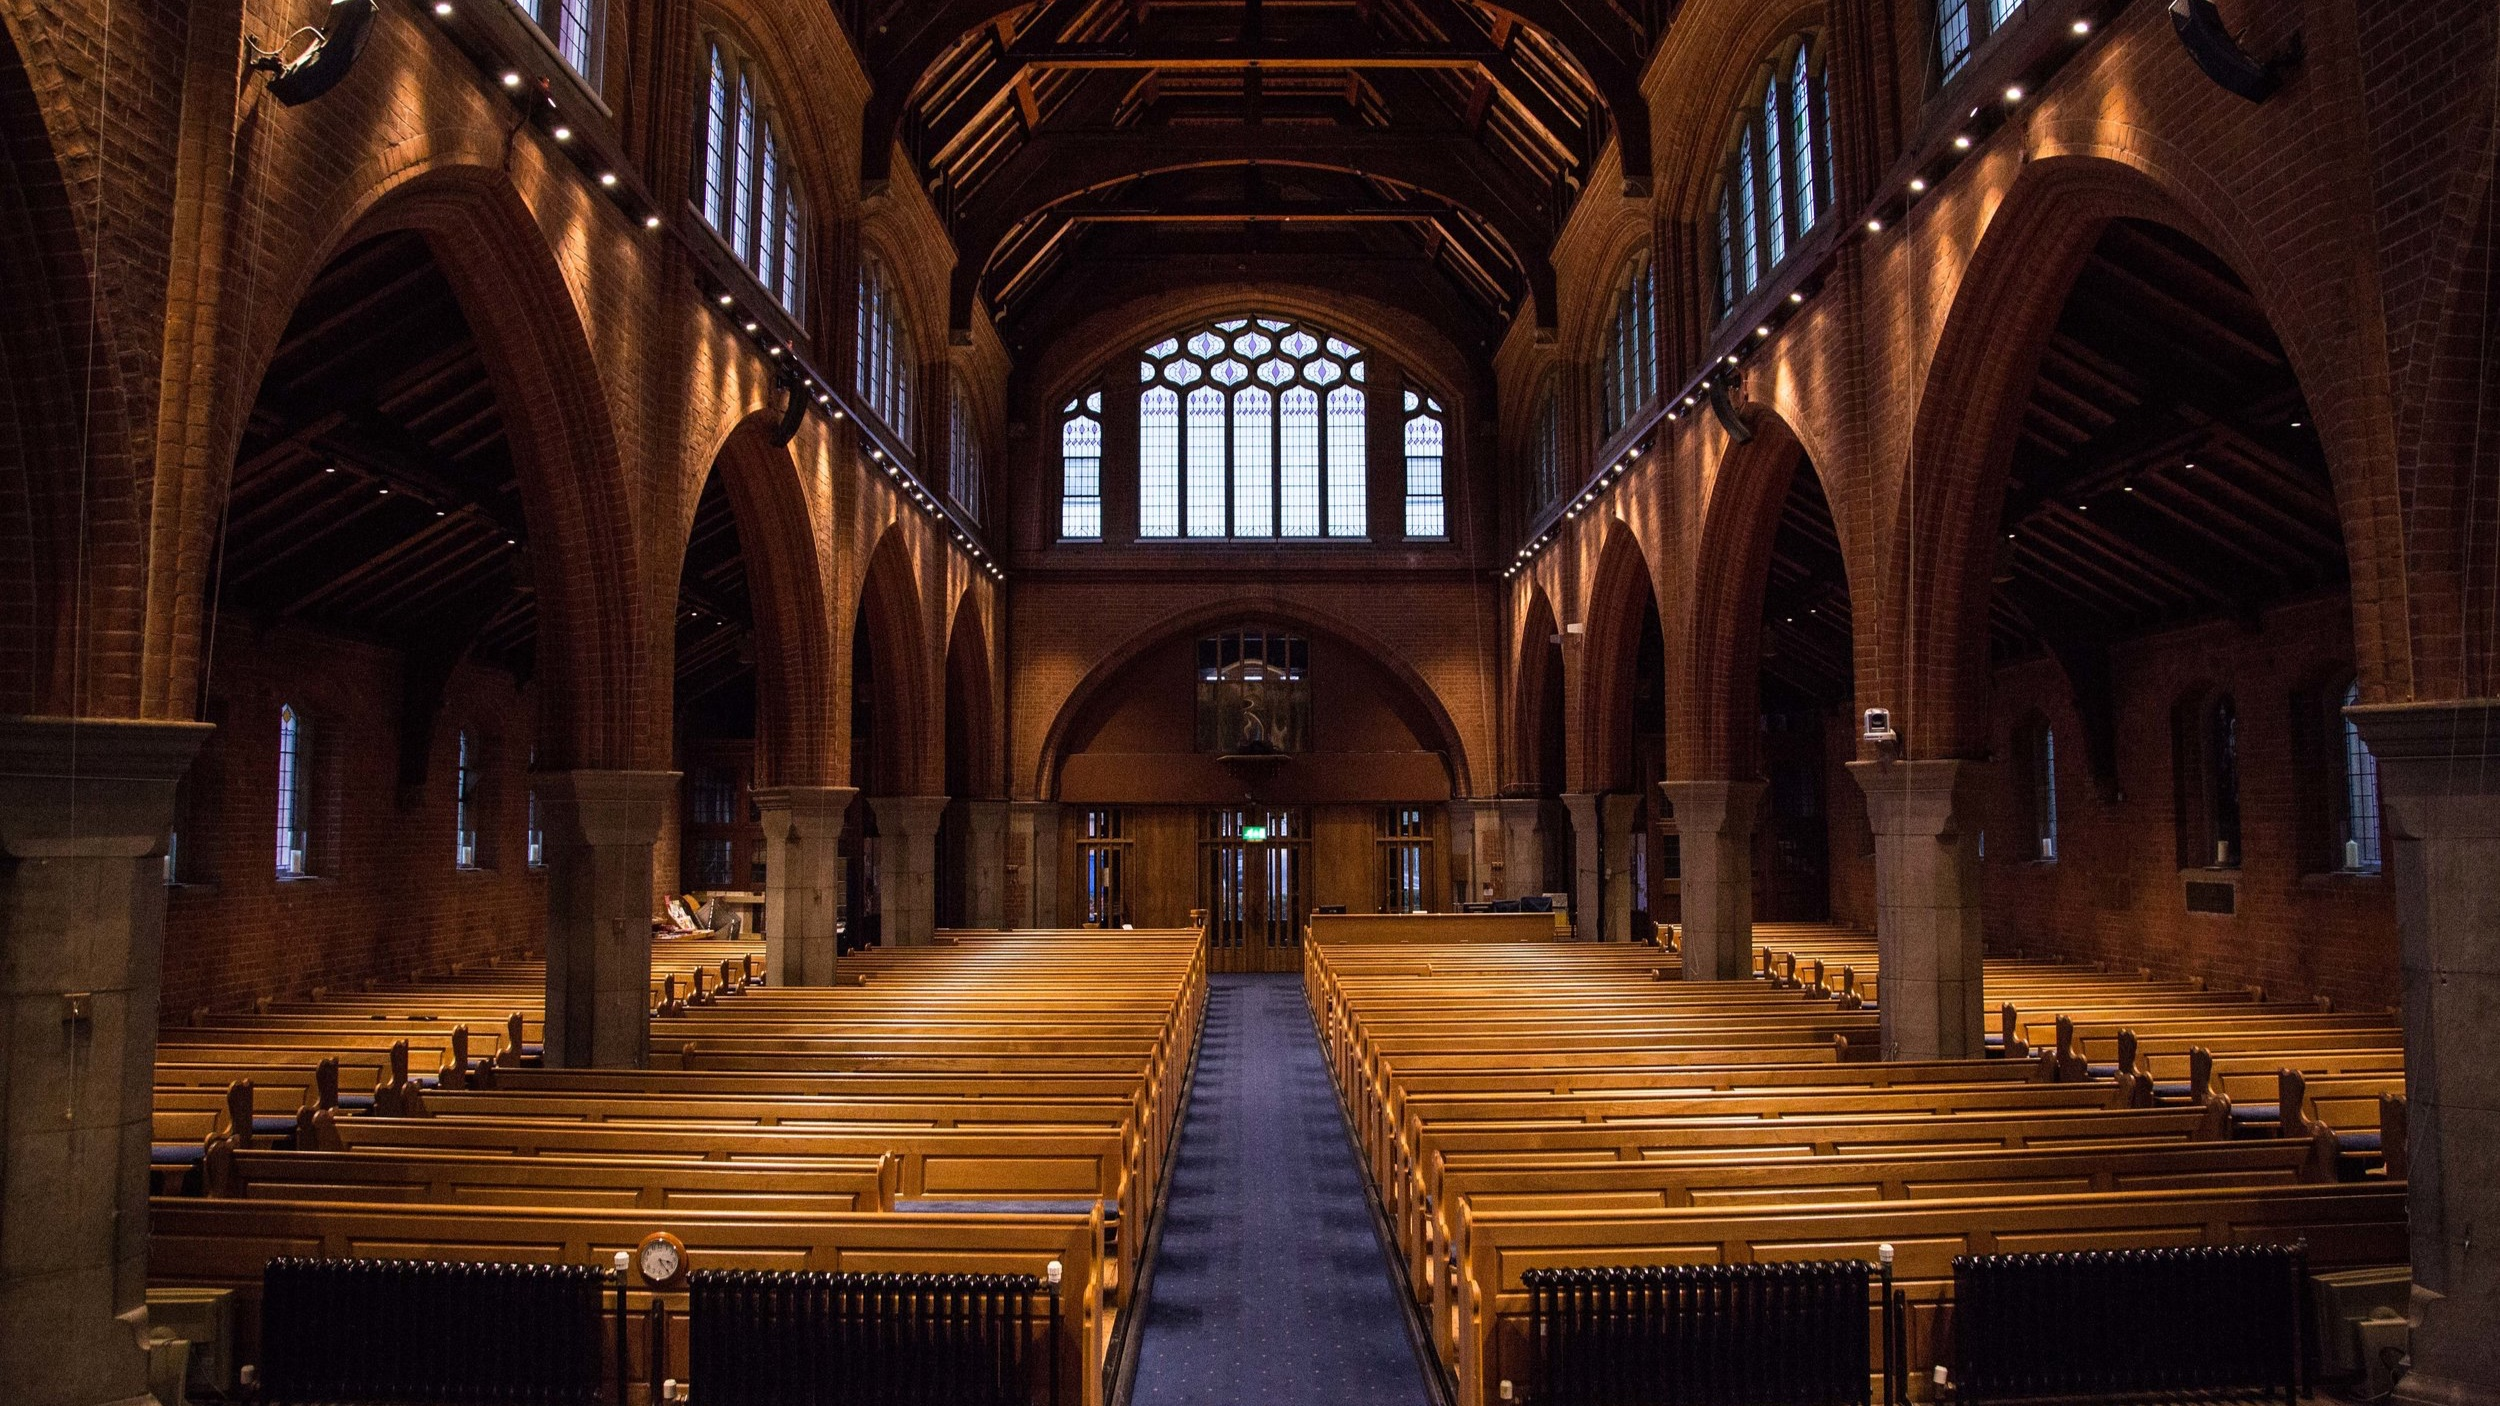 Church (carpet & floorboards) - Capacity: 500 seated in pewsIdeal for: Concerts, lectures, etc.Cost: £400 a day